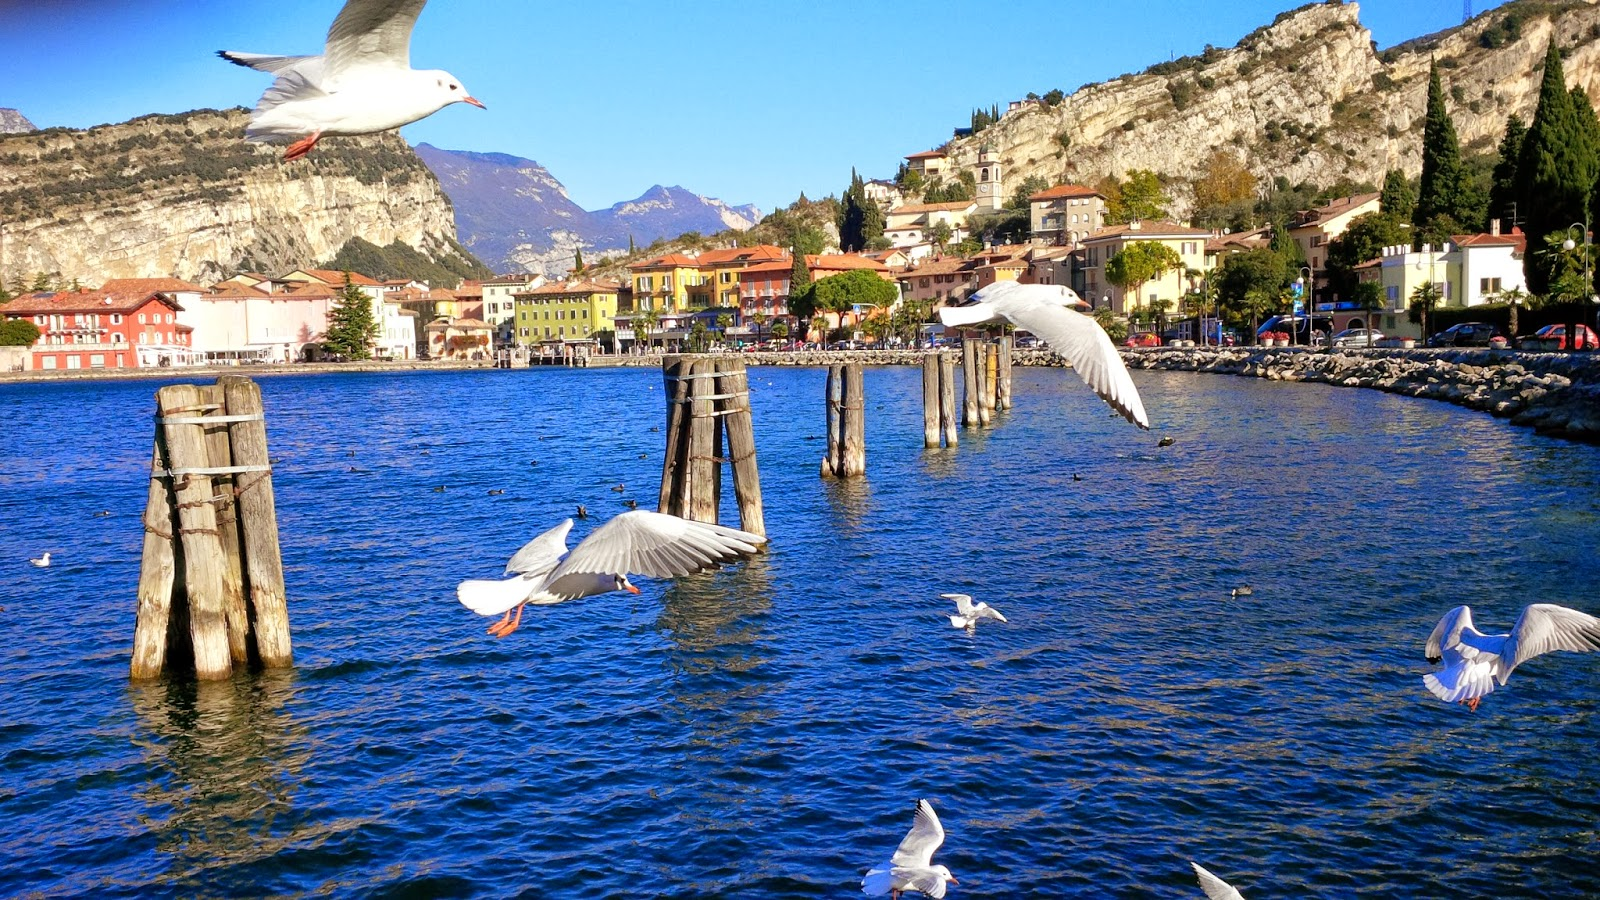 Feeding the seagulls and ducks at Torbole 2